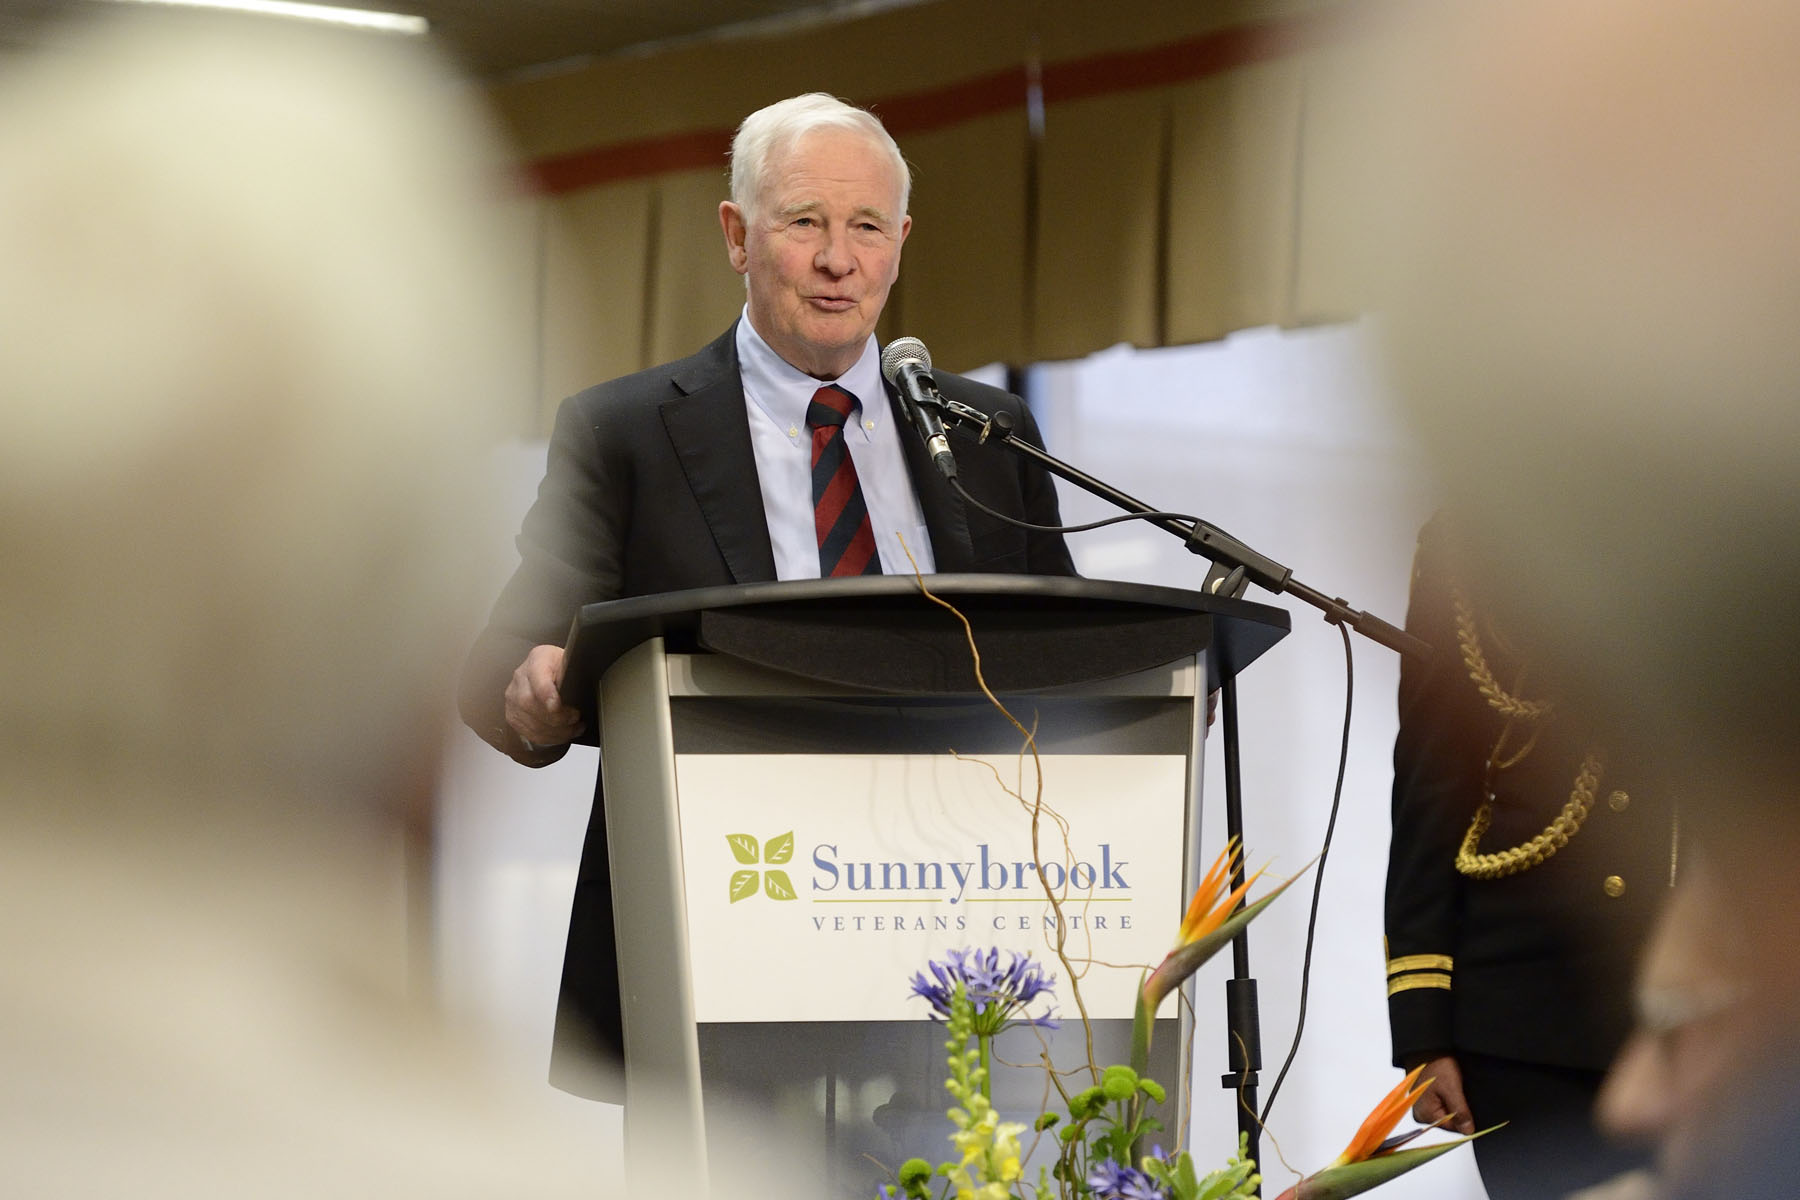 At the Sunnybrook Veterans Centre, His Excellency delivered remarks to thank veterans for their service to our country.